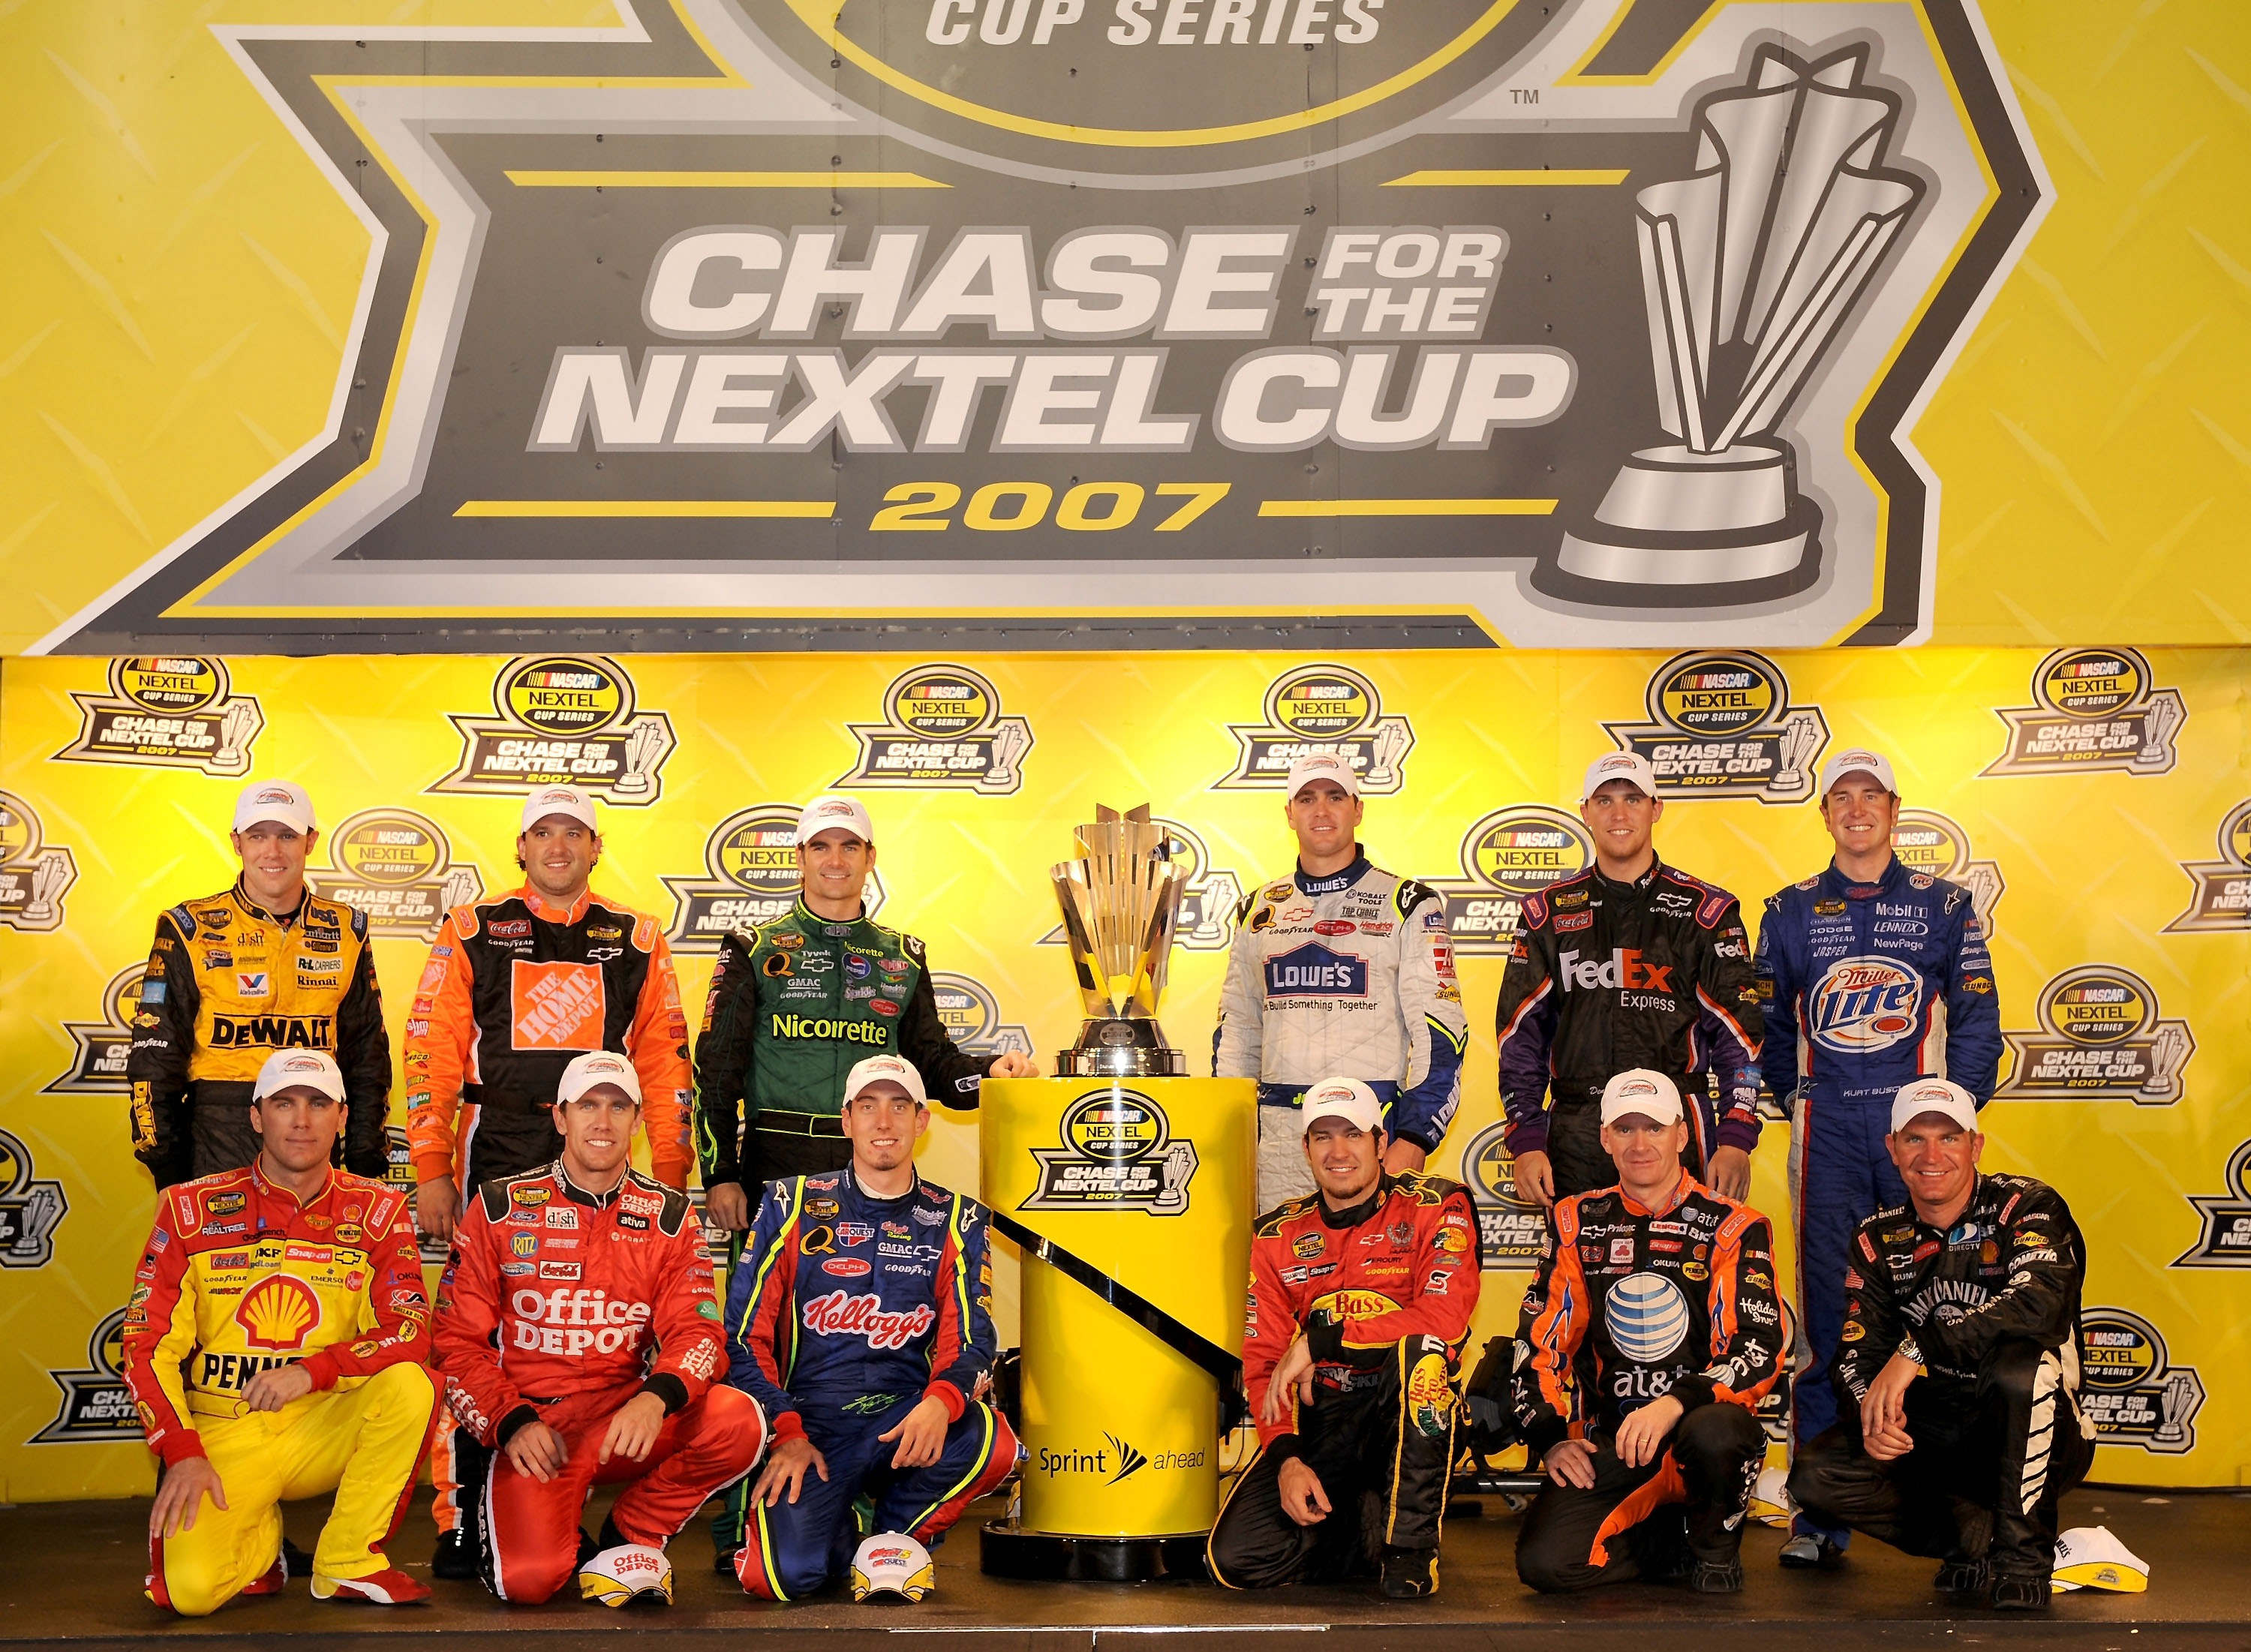 2007 CHase For the cup field